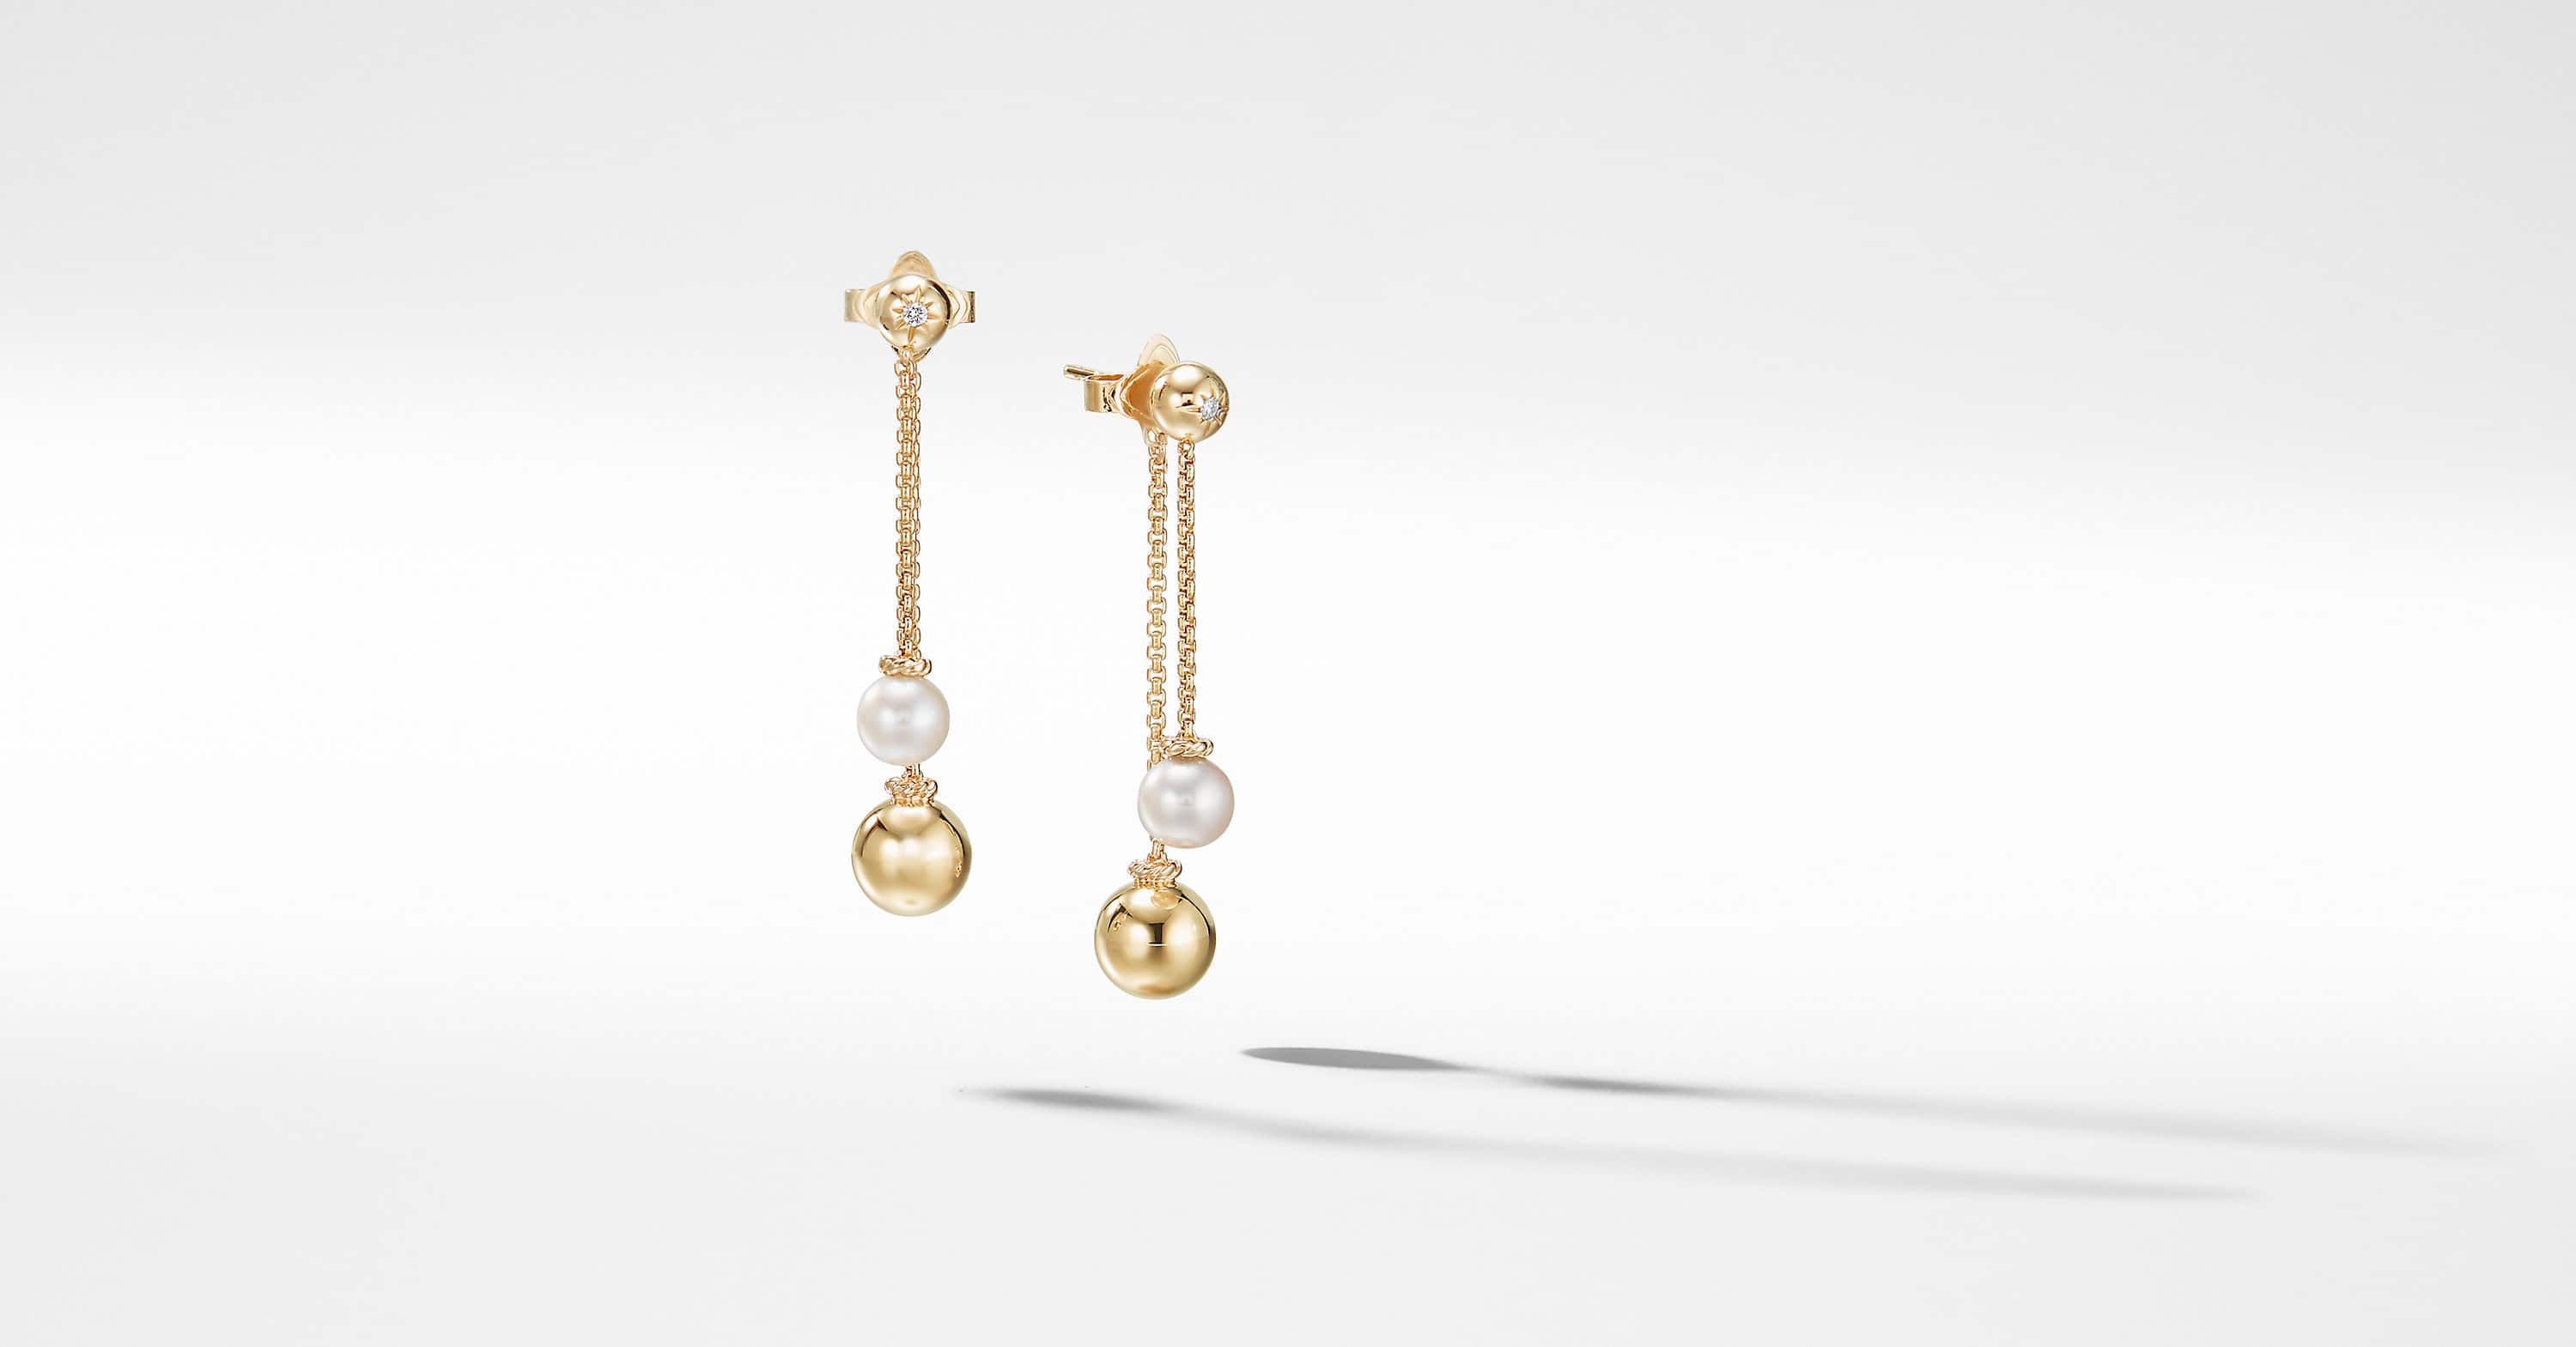 Solari Chain Drop Earrings with Diamonds in 18K Gold